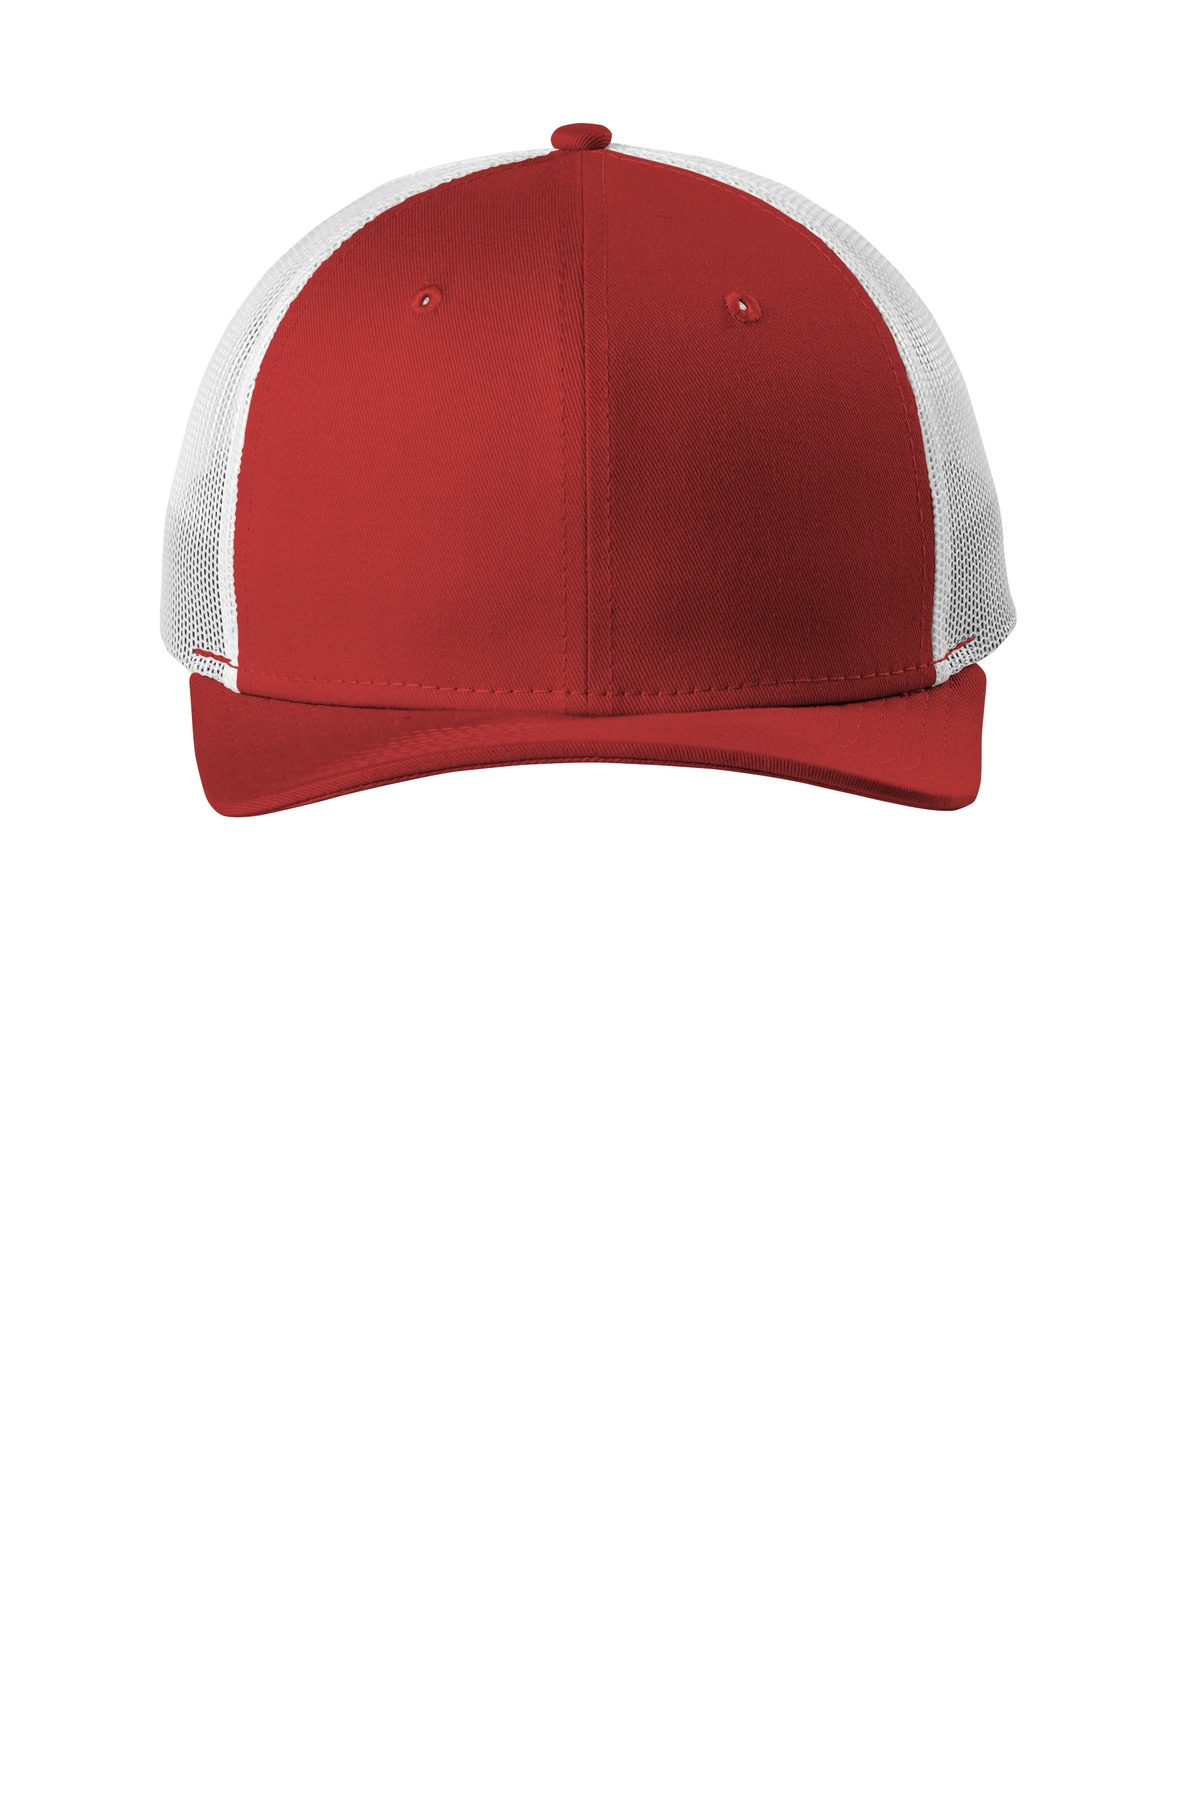 New Era  ®   Snapback Low Profile Trucker Cap   NE207 - Scarlet/ White